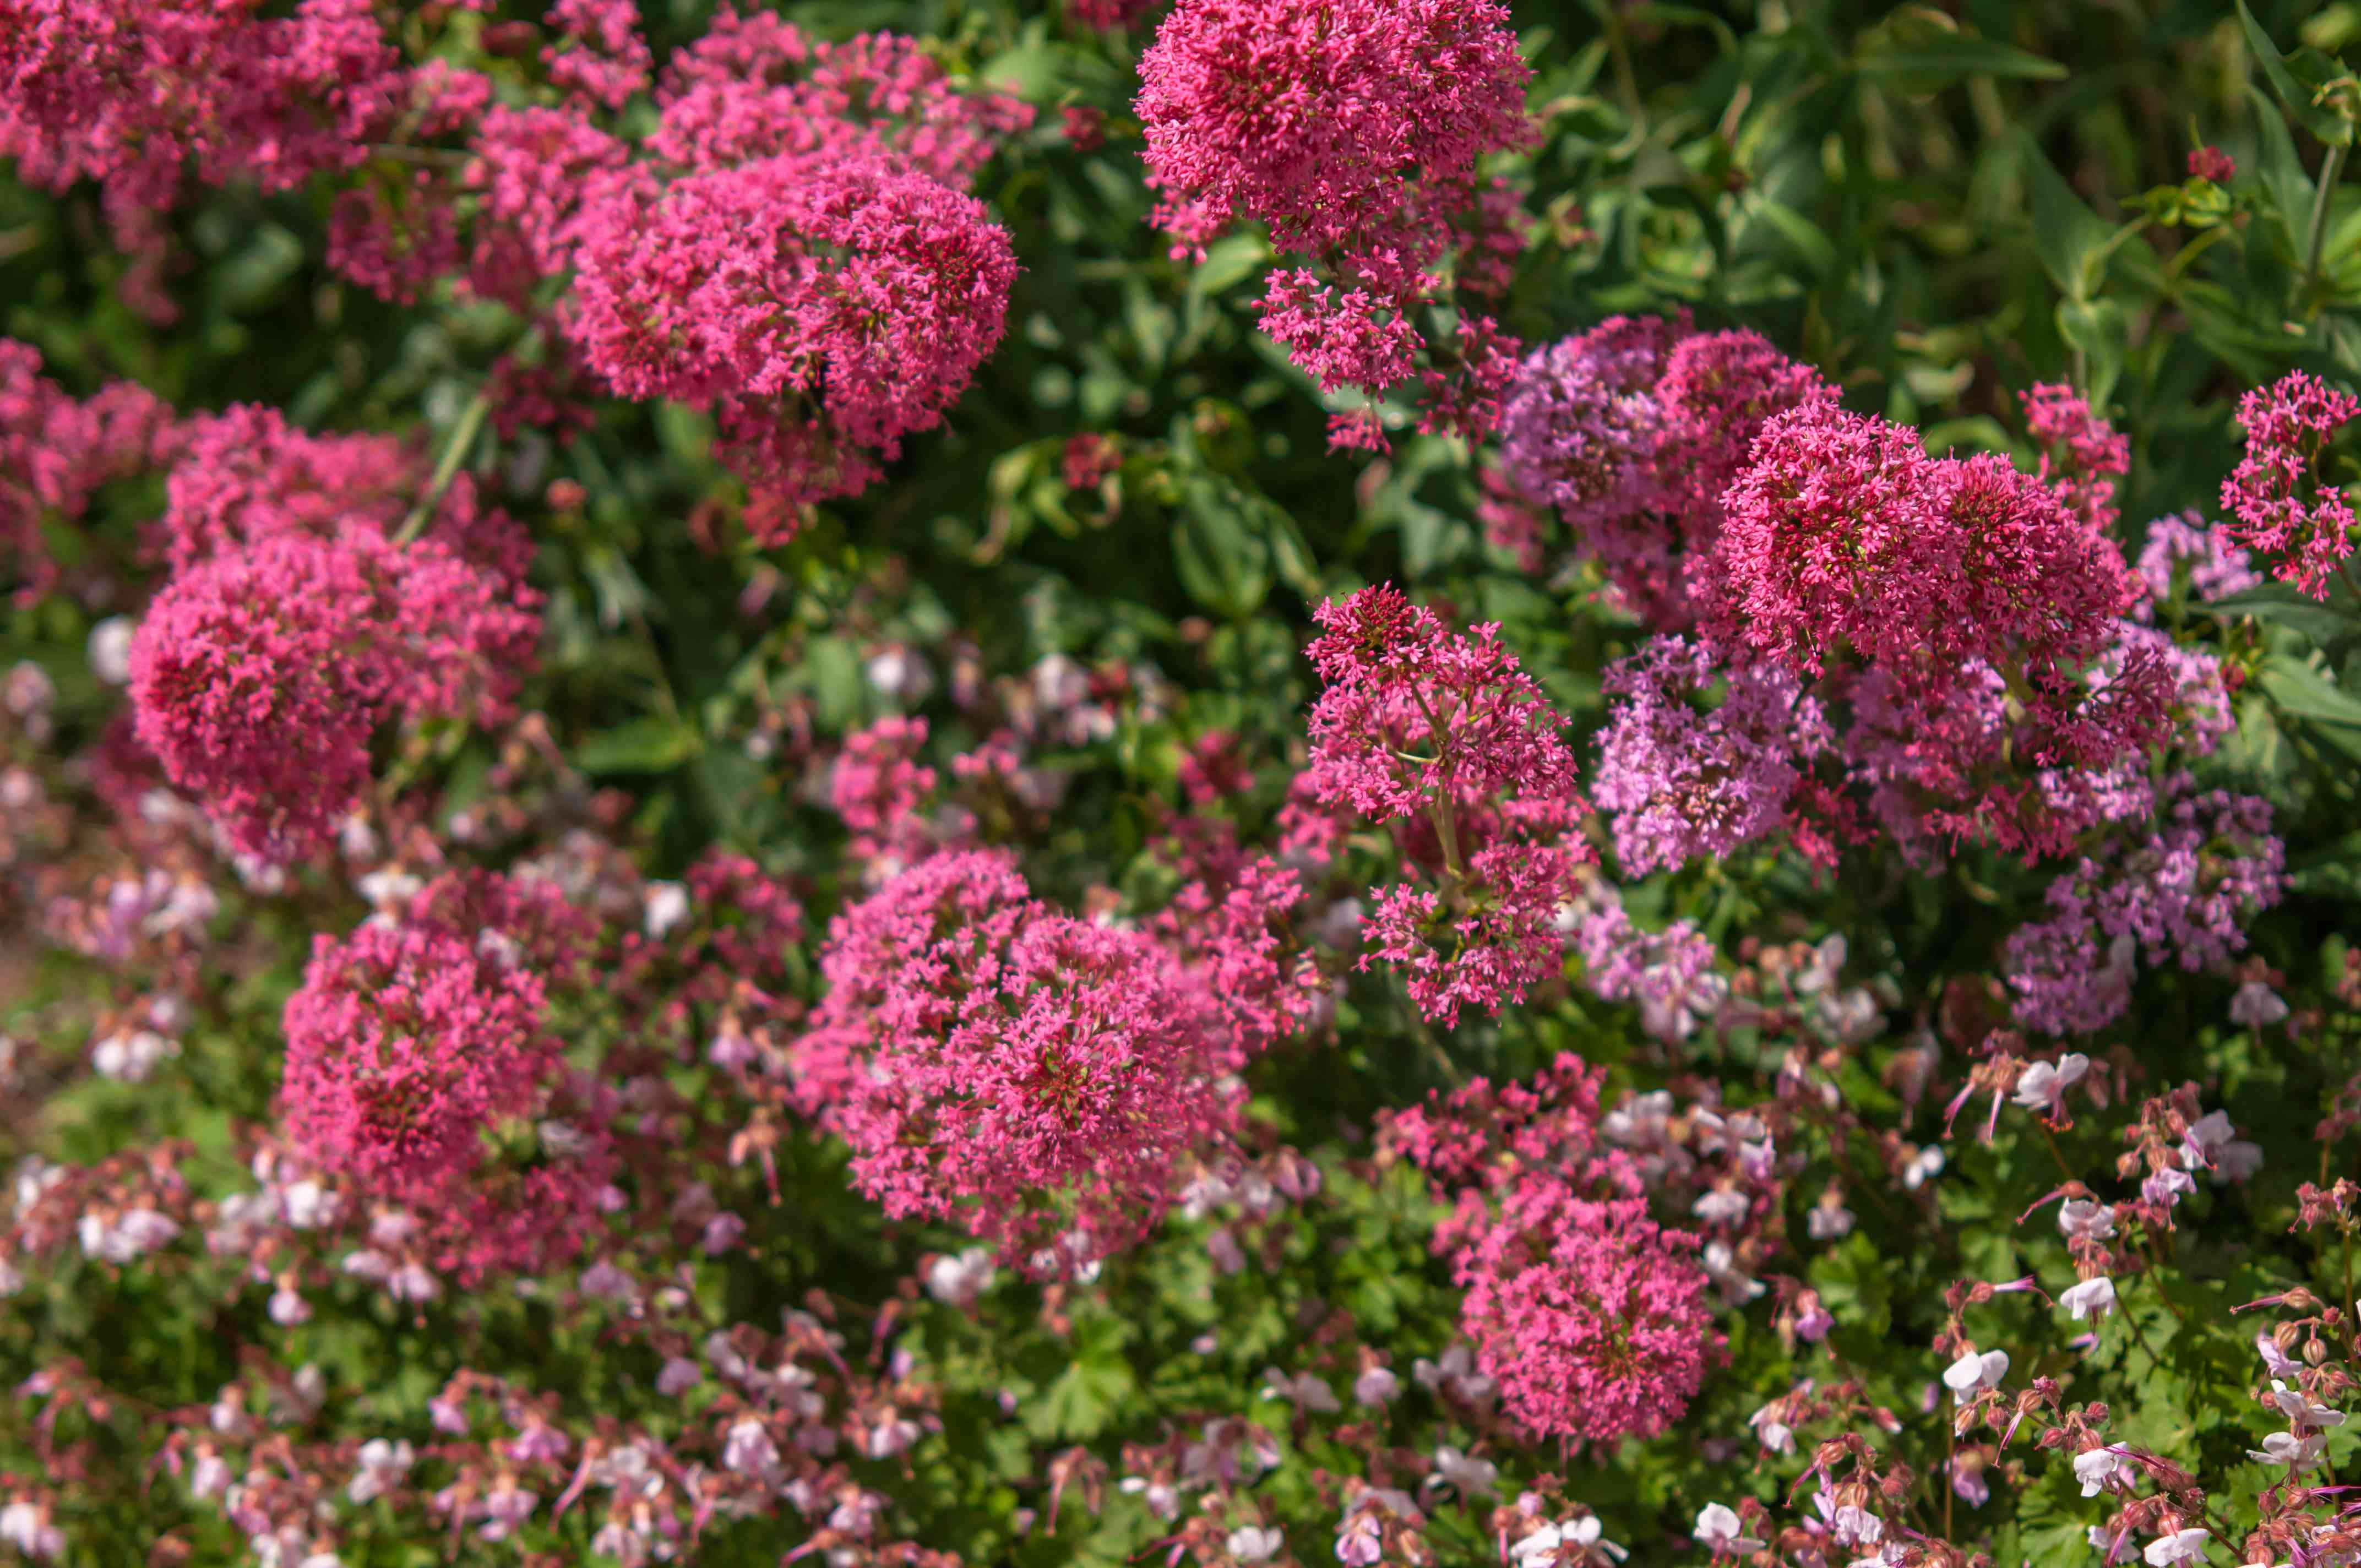 Red valerian bush with pink flowers